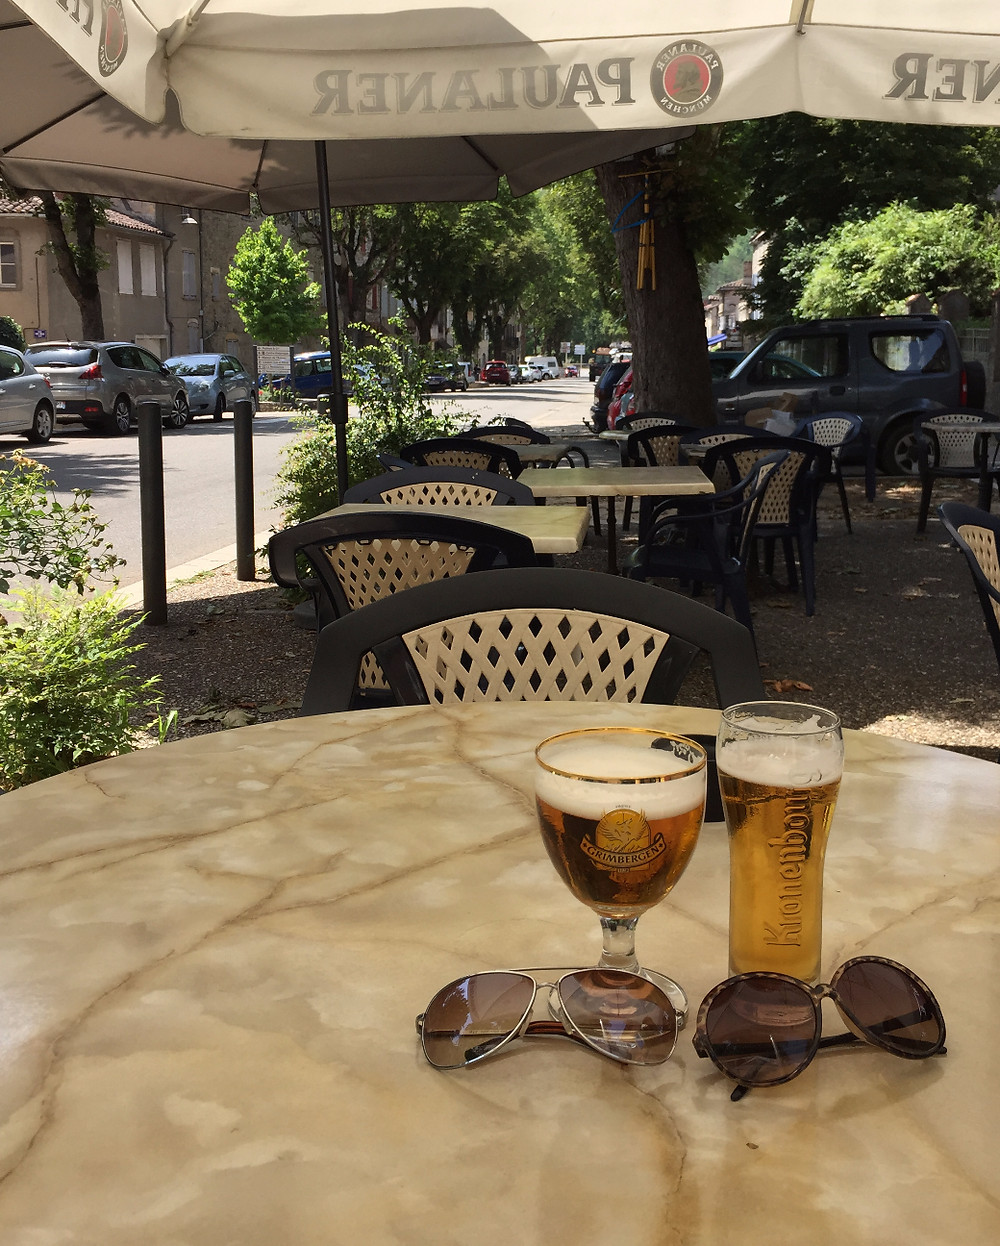 A rare moment of quiet at Gaspacho in Saint Antonin. Usually great for people watching!